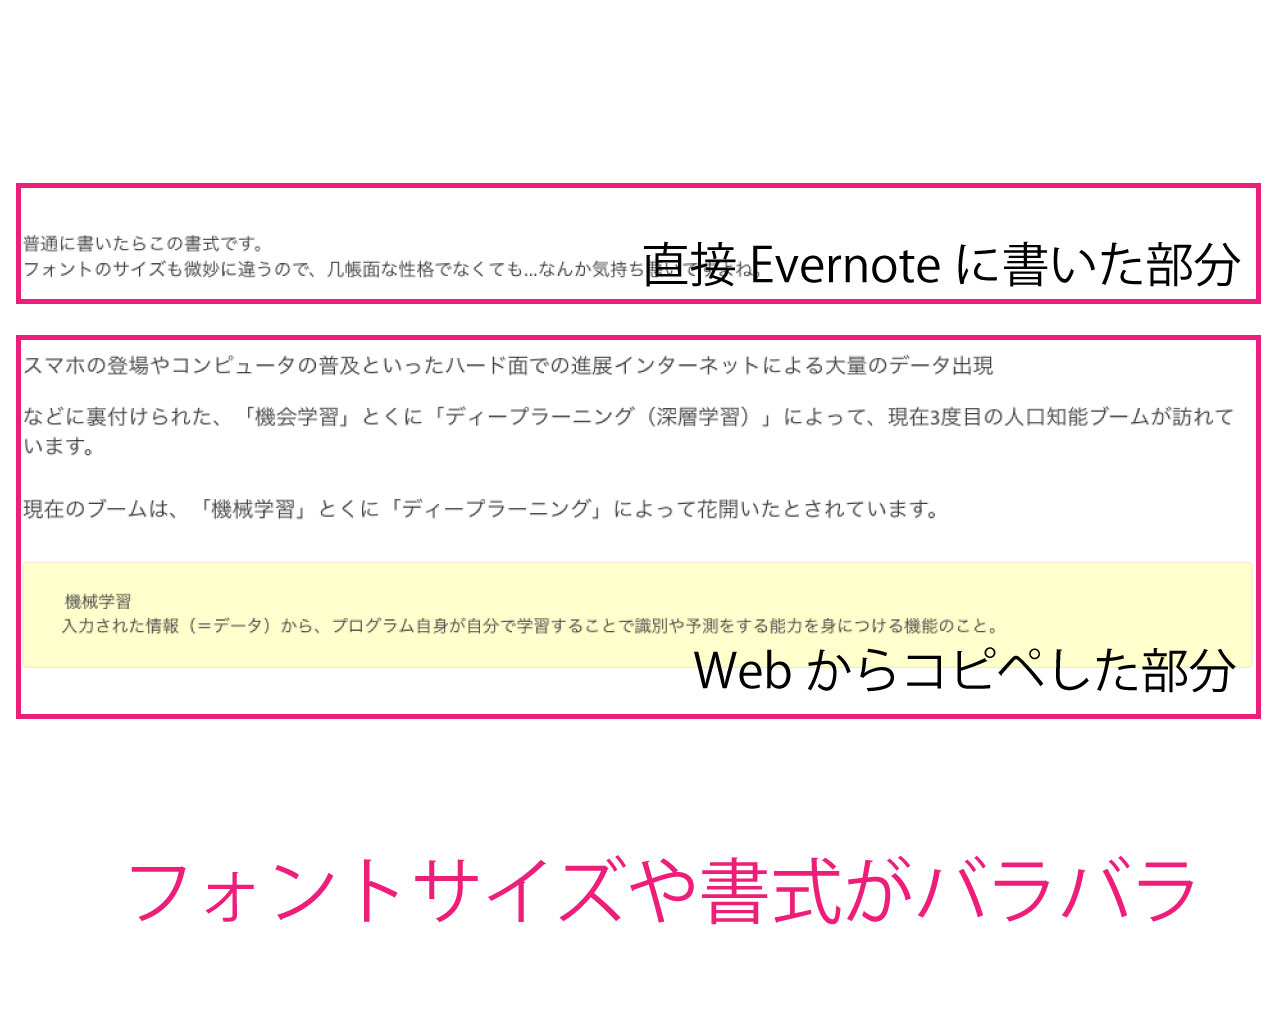 website-evernote-copy-and-paste-1-1